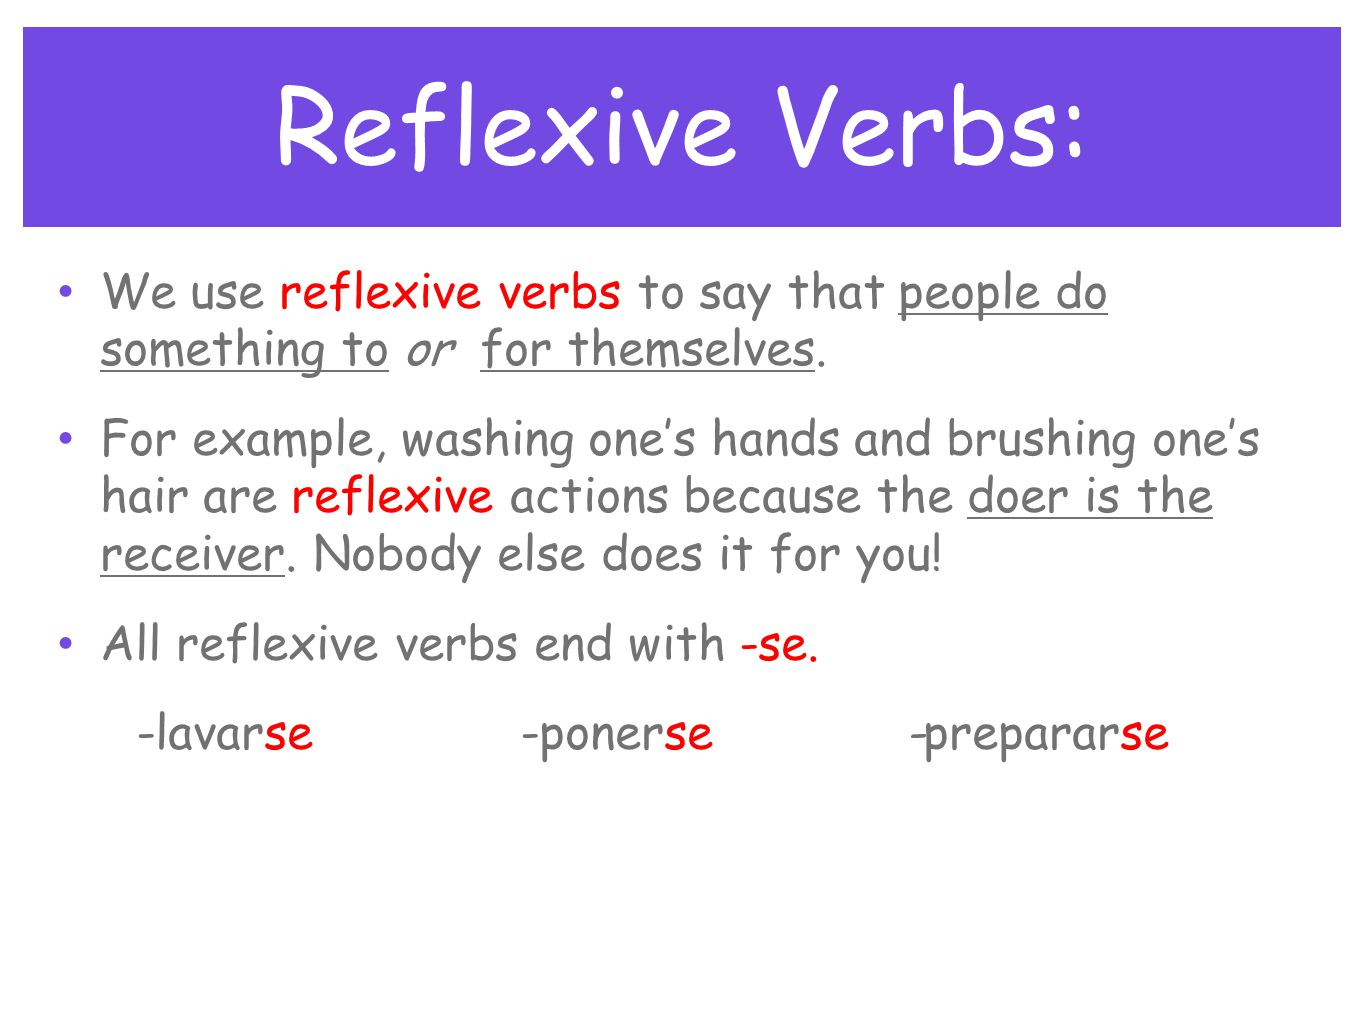 Reflexive Verbs: We use reflexive verbs to say that people do something to or for themselves.